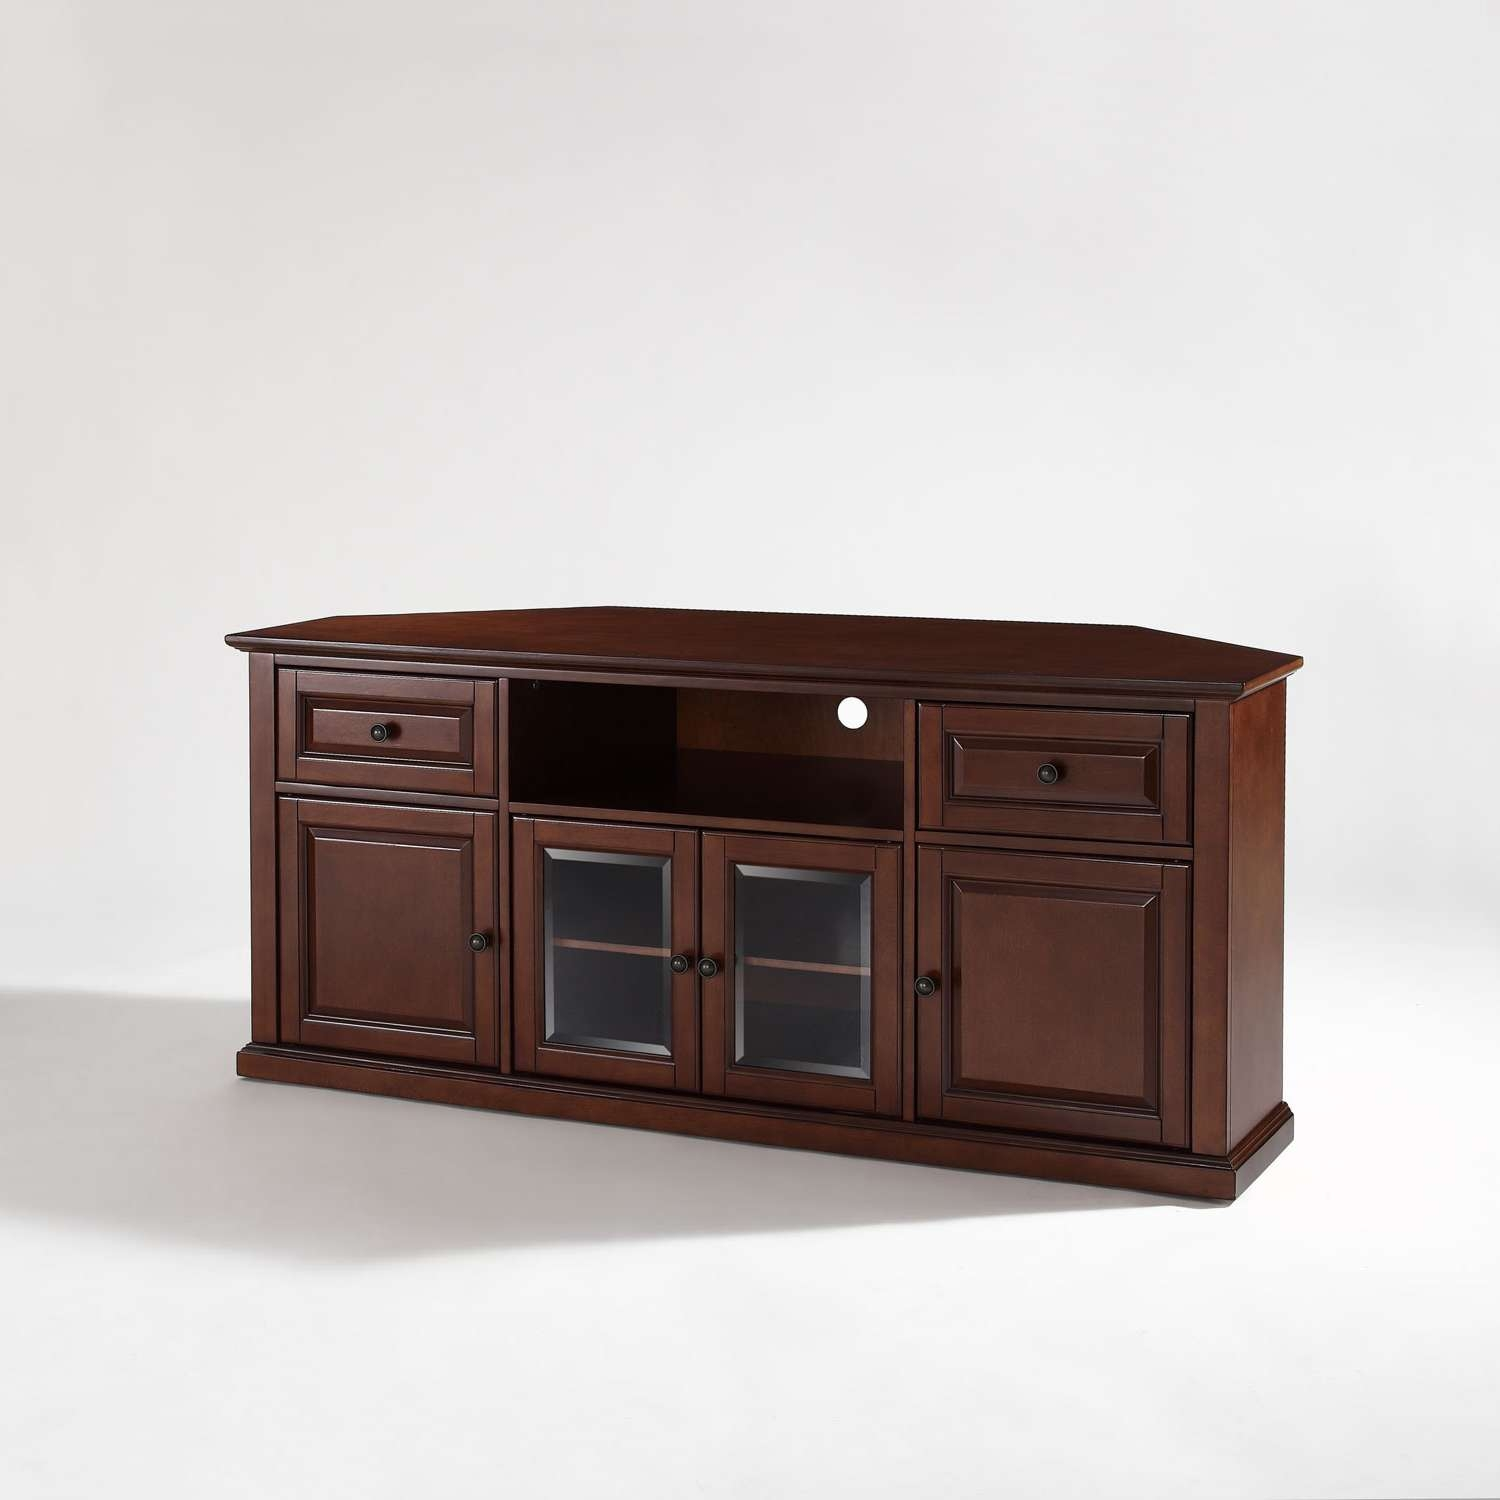 60 Inch Corner Tv Stand In Vintage Mahogany Crosley Furniture Throughout Low Corner Tv Stands (View 1 of 15)